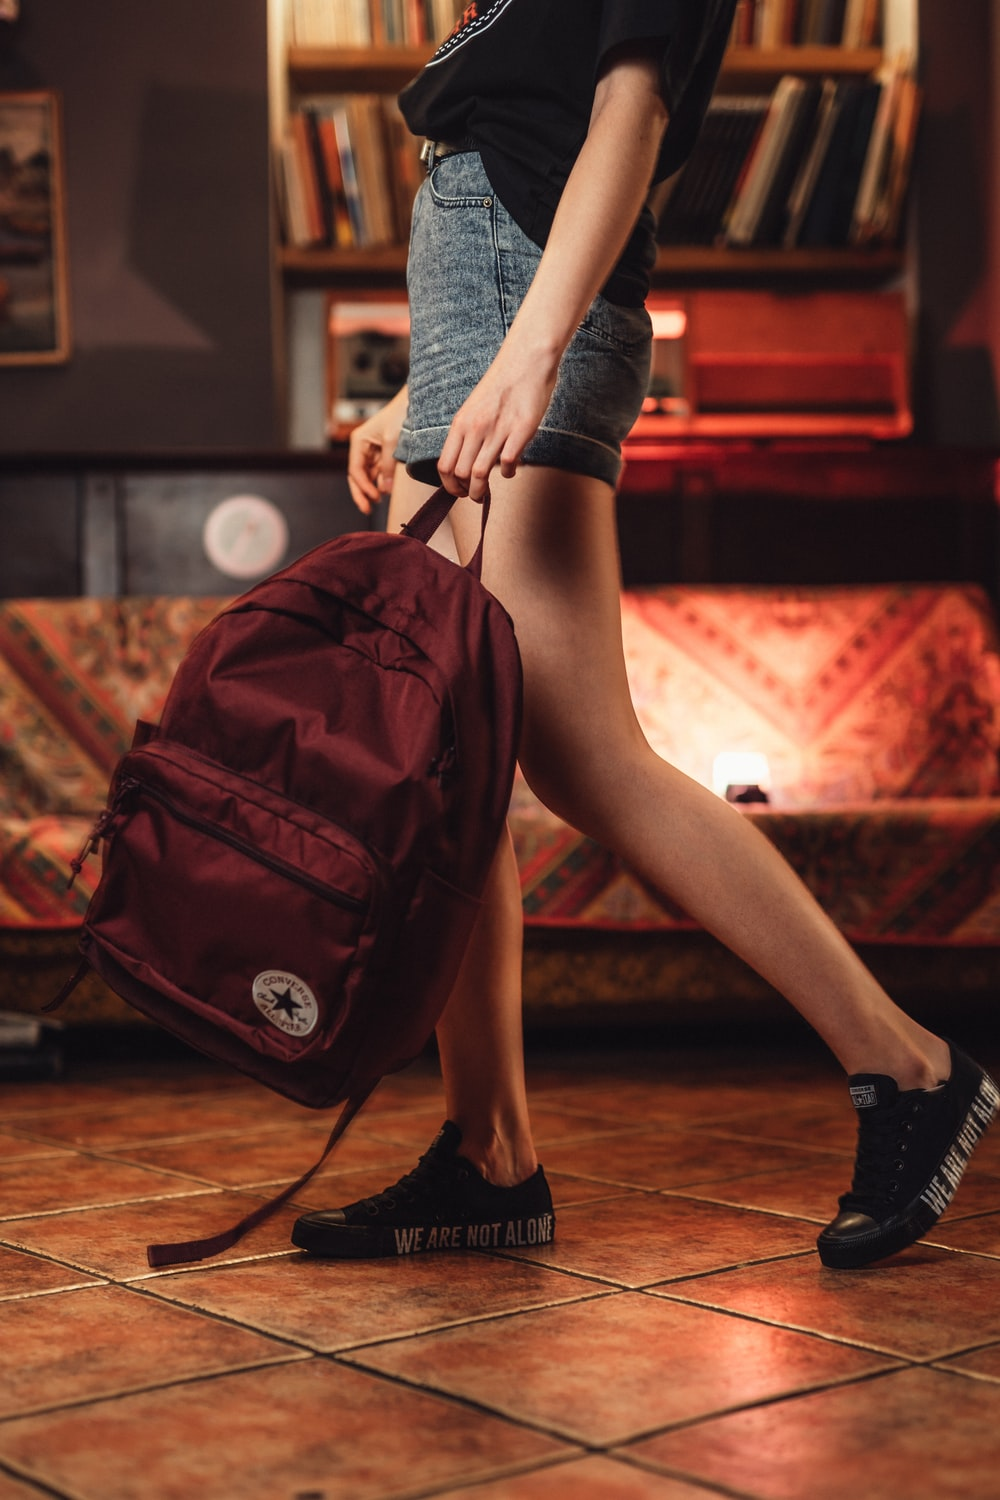 woman carrying maroon backpack